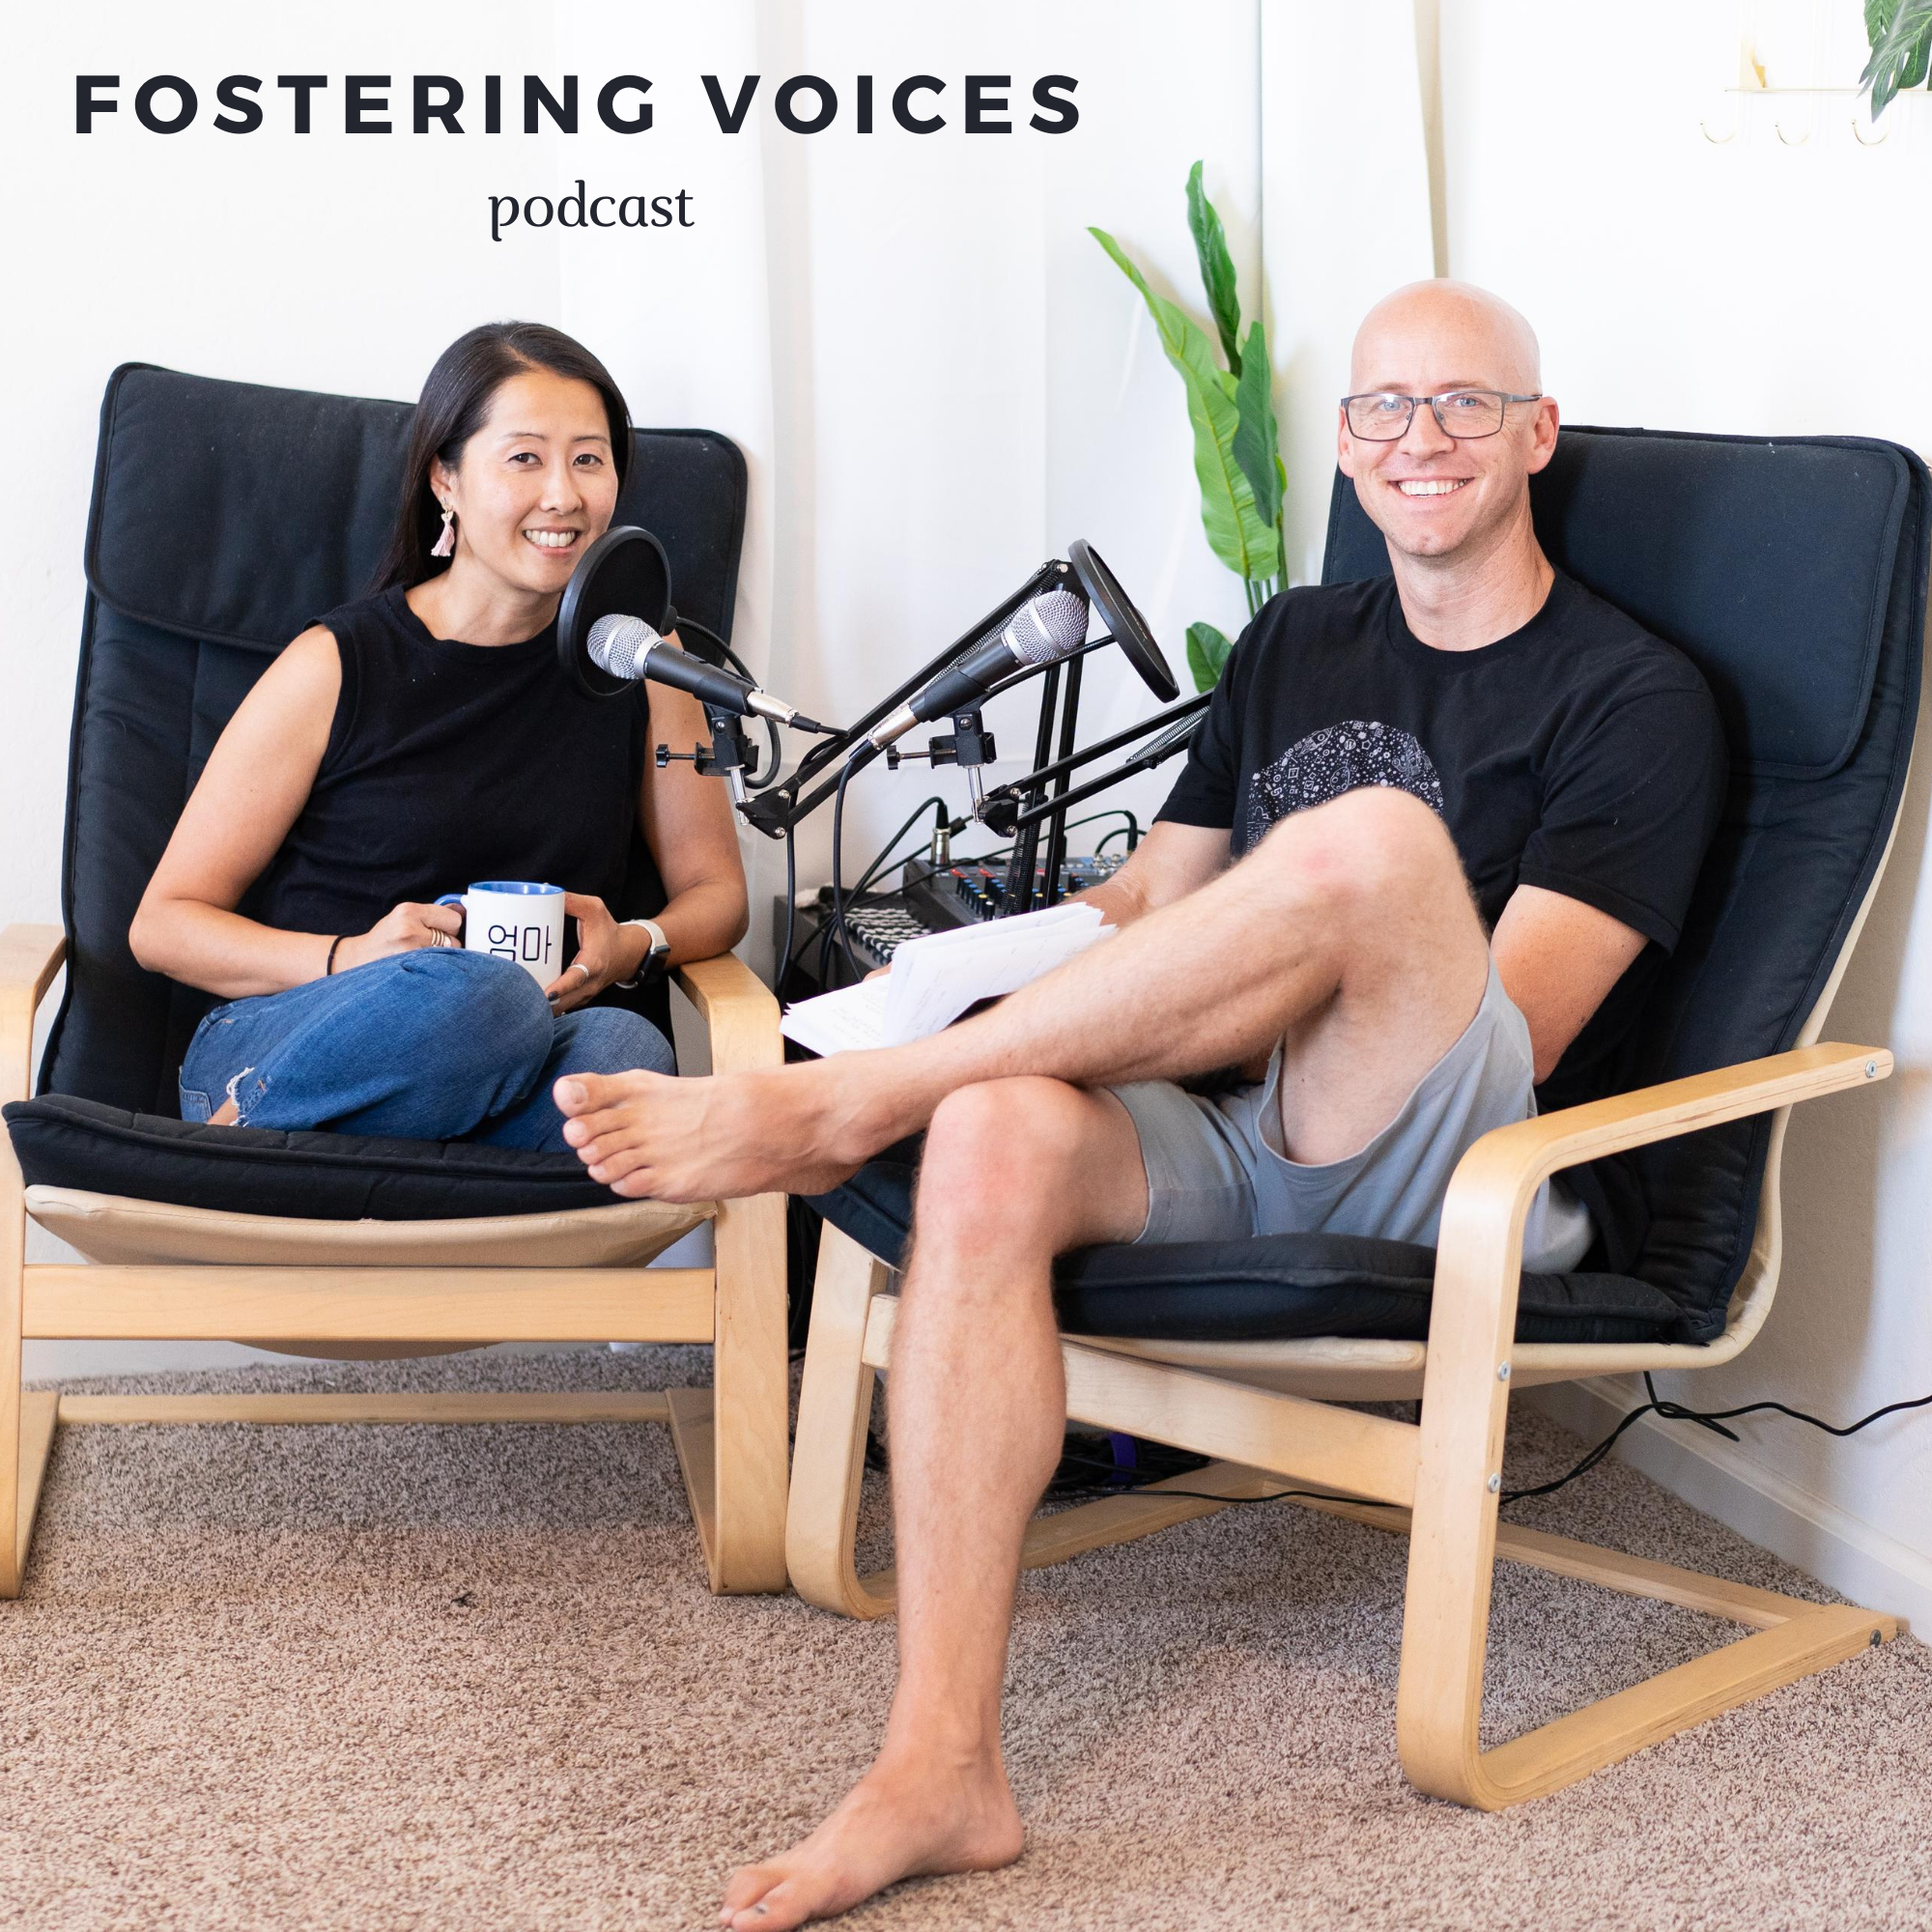 Episode 85: Interview with Arizona Association for Foster and Adoptive Parents show art